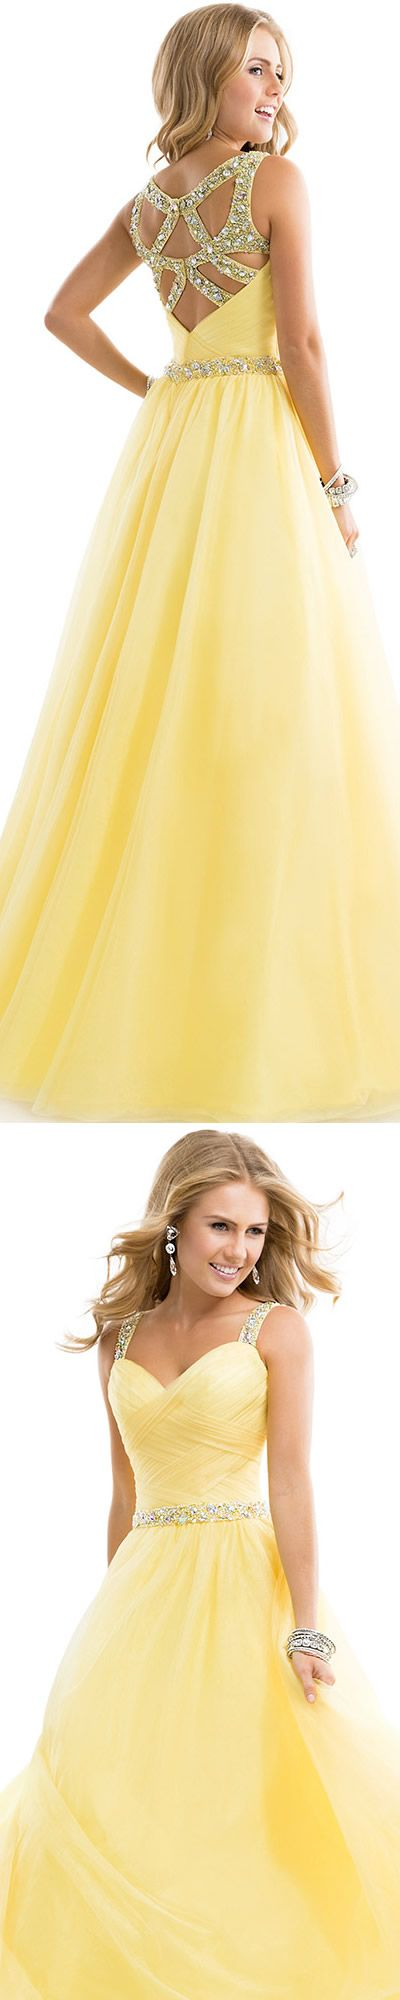 DIYouth.com Beading Embellishment Straps Floor Length Yellow Prom Dress Prom Dress Tulle Ball Gown With Jeweled Straps Yellow Open Back evening dresses,yellow party dress,backless evening gown,long prom dresses